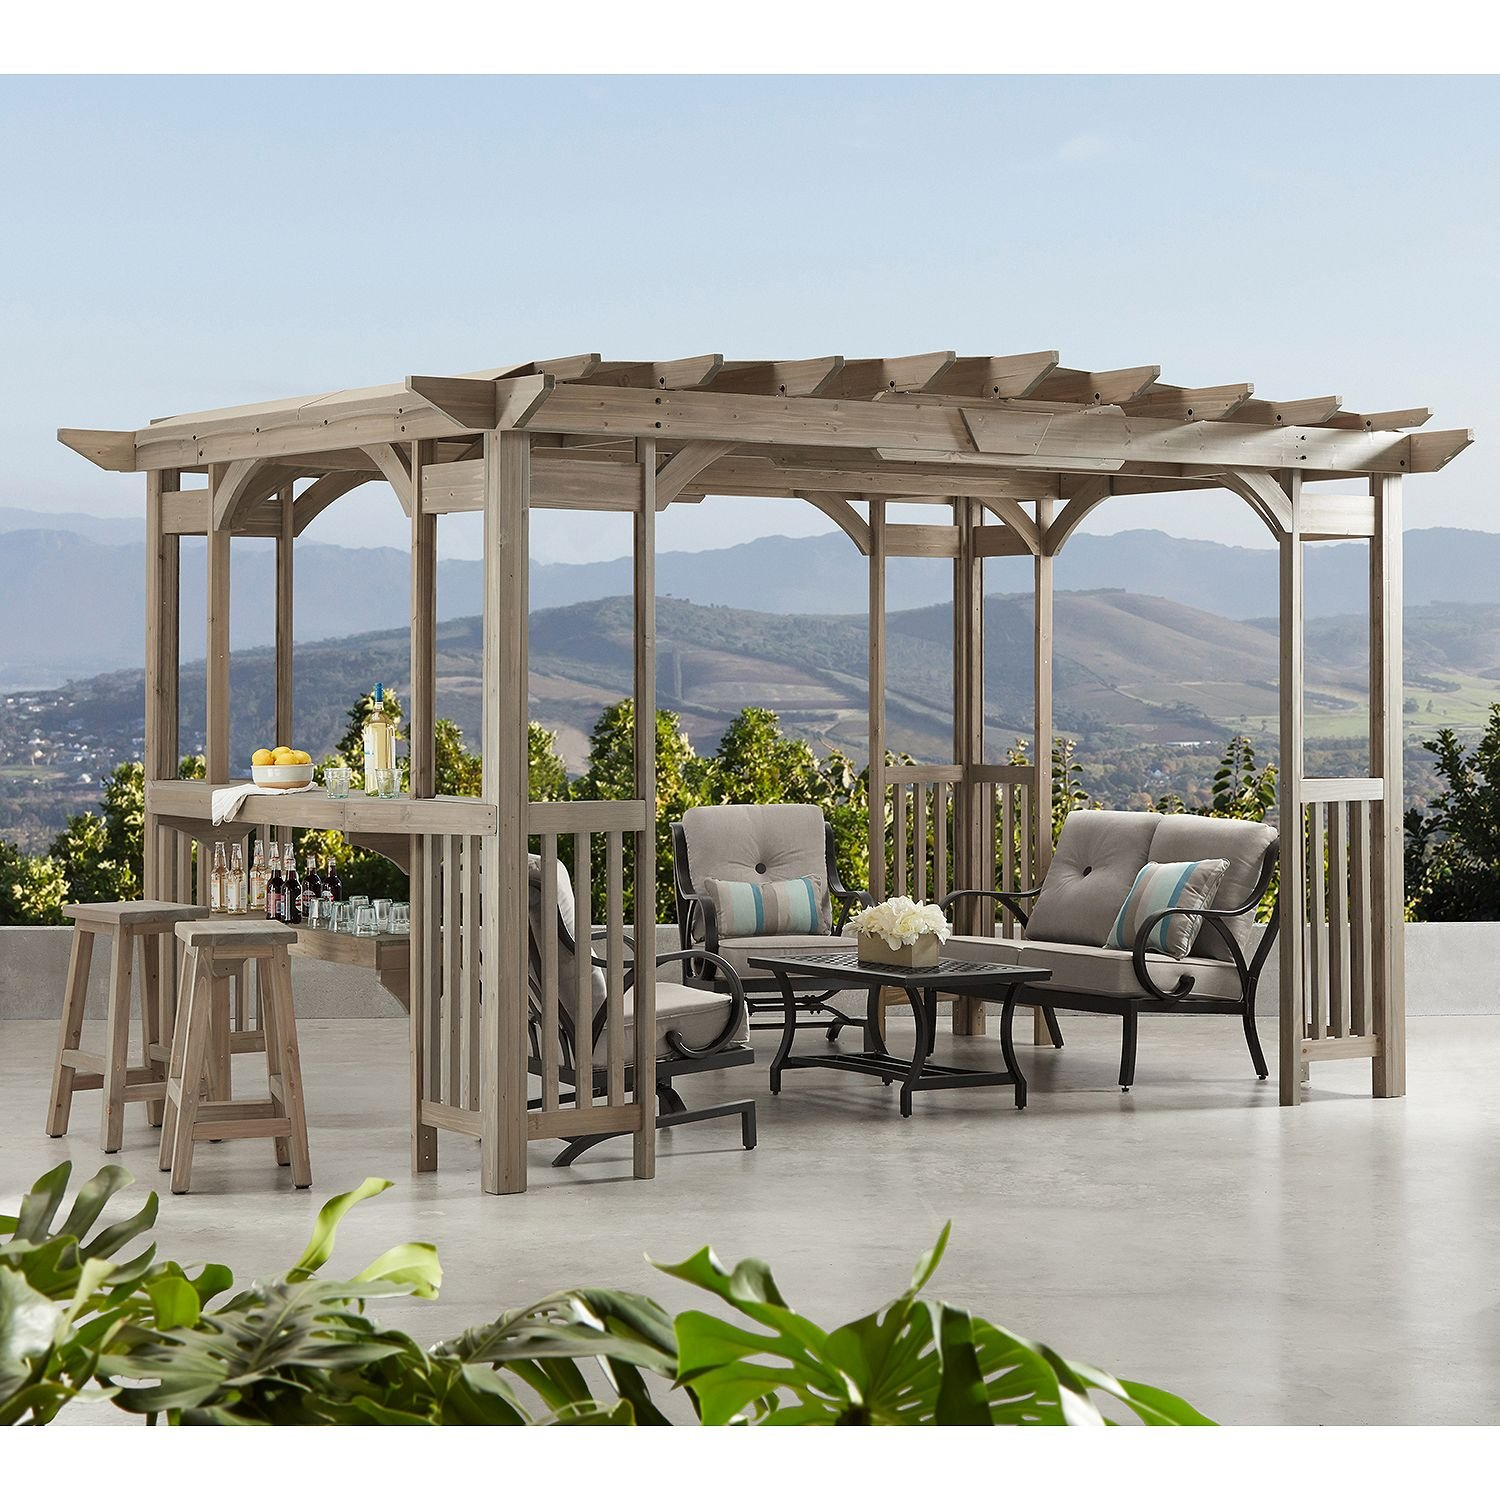 Cedar Pergola Gazebo with Bar Counter and Sunshade in Timber Gray Stain 12' x 8'